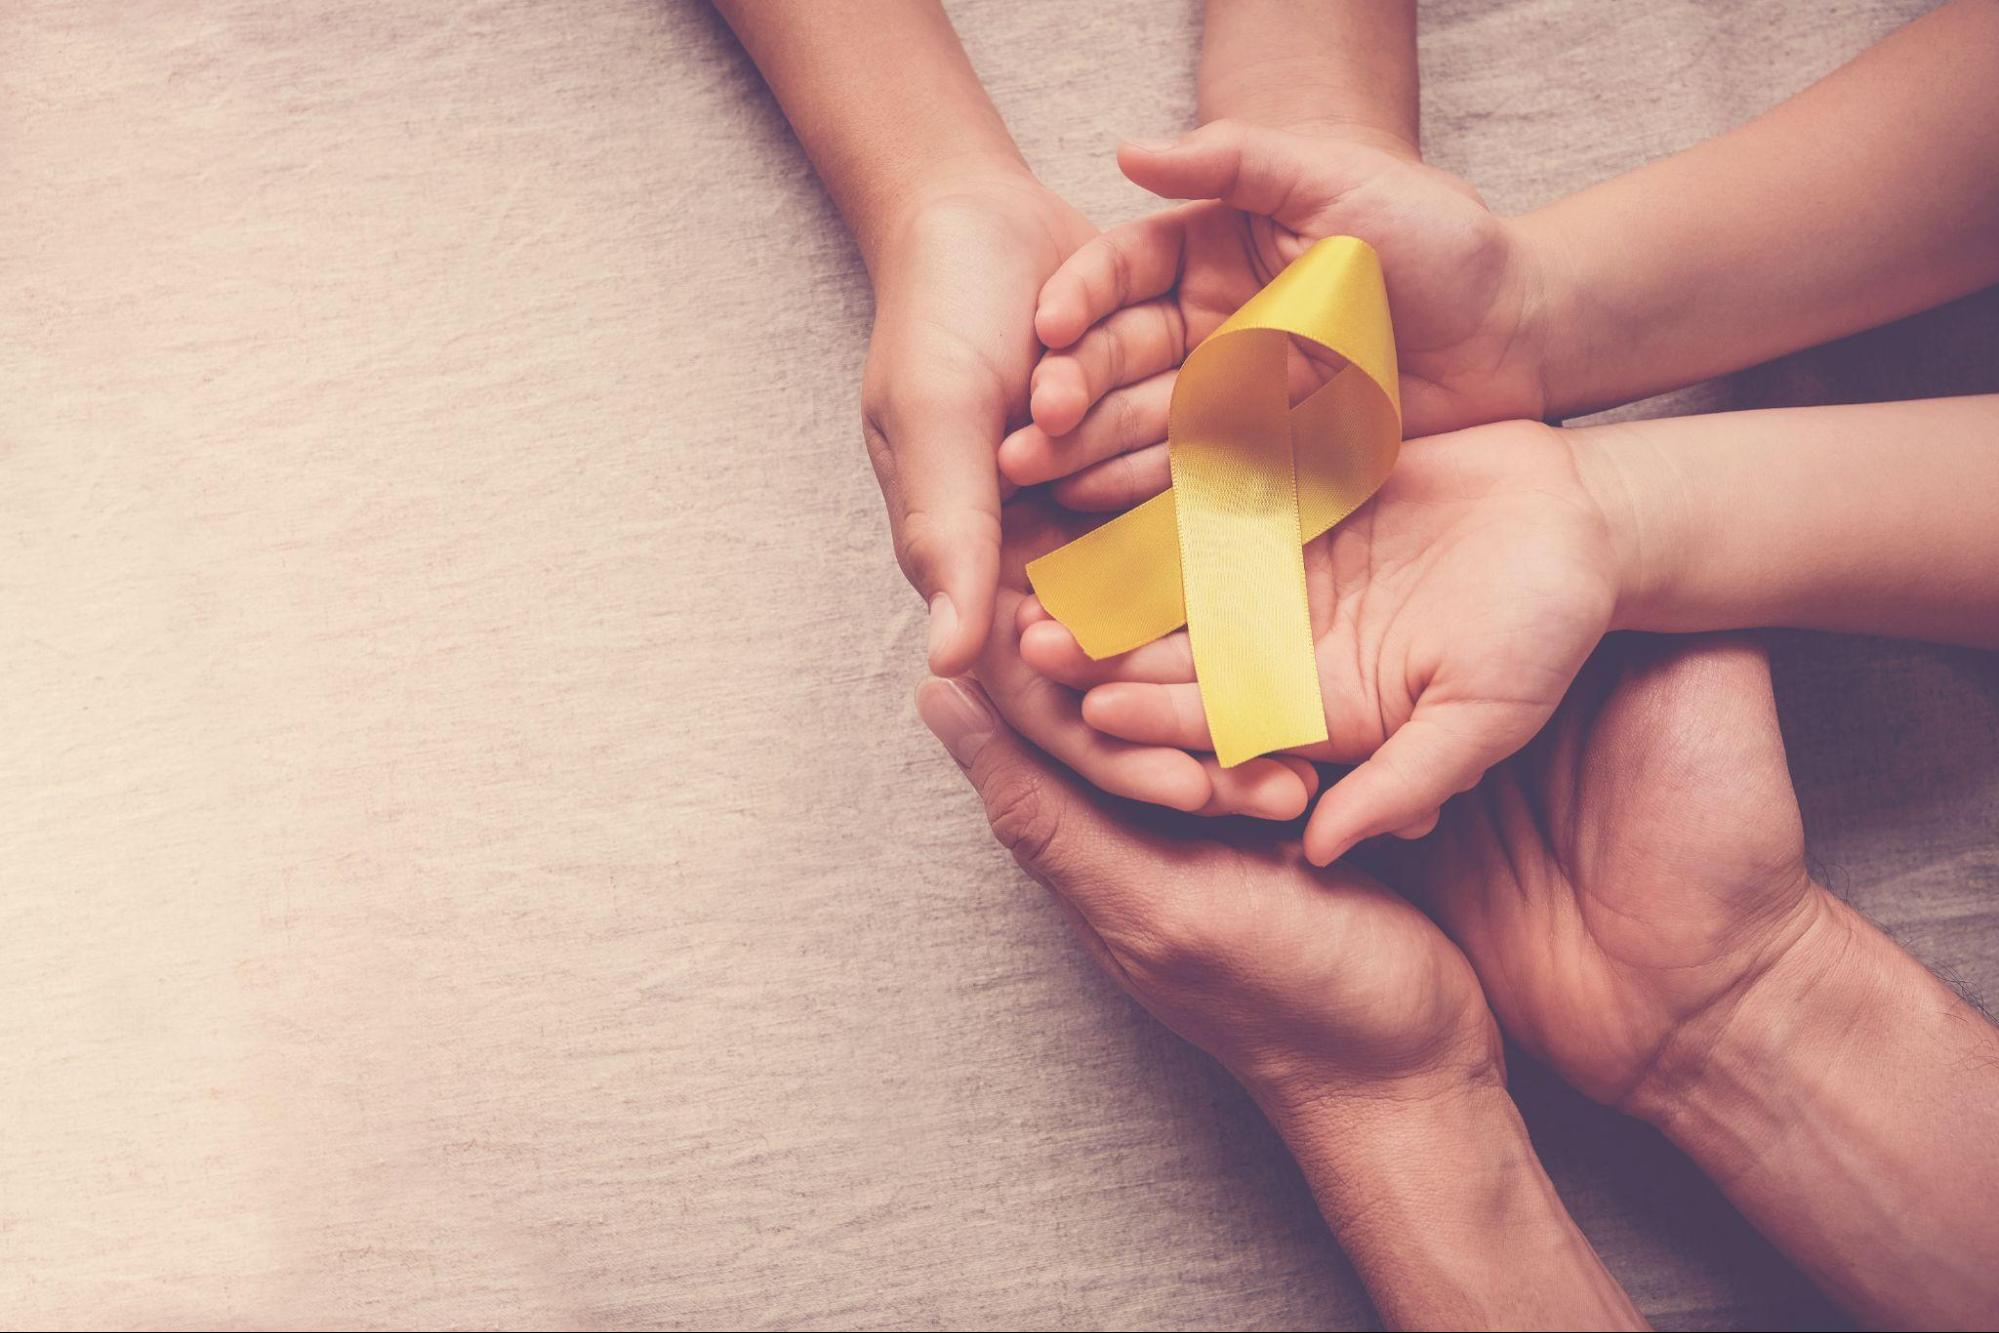 World Suicide Prevention Day: Know the signs